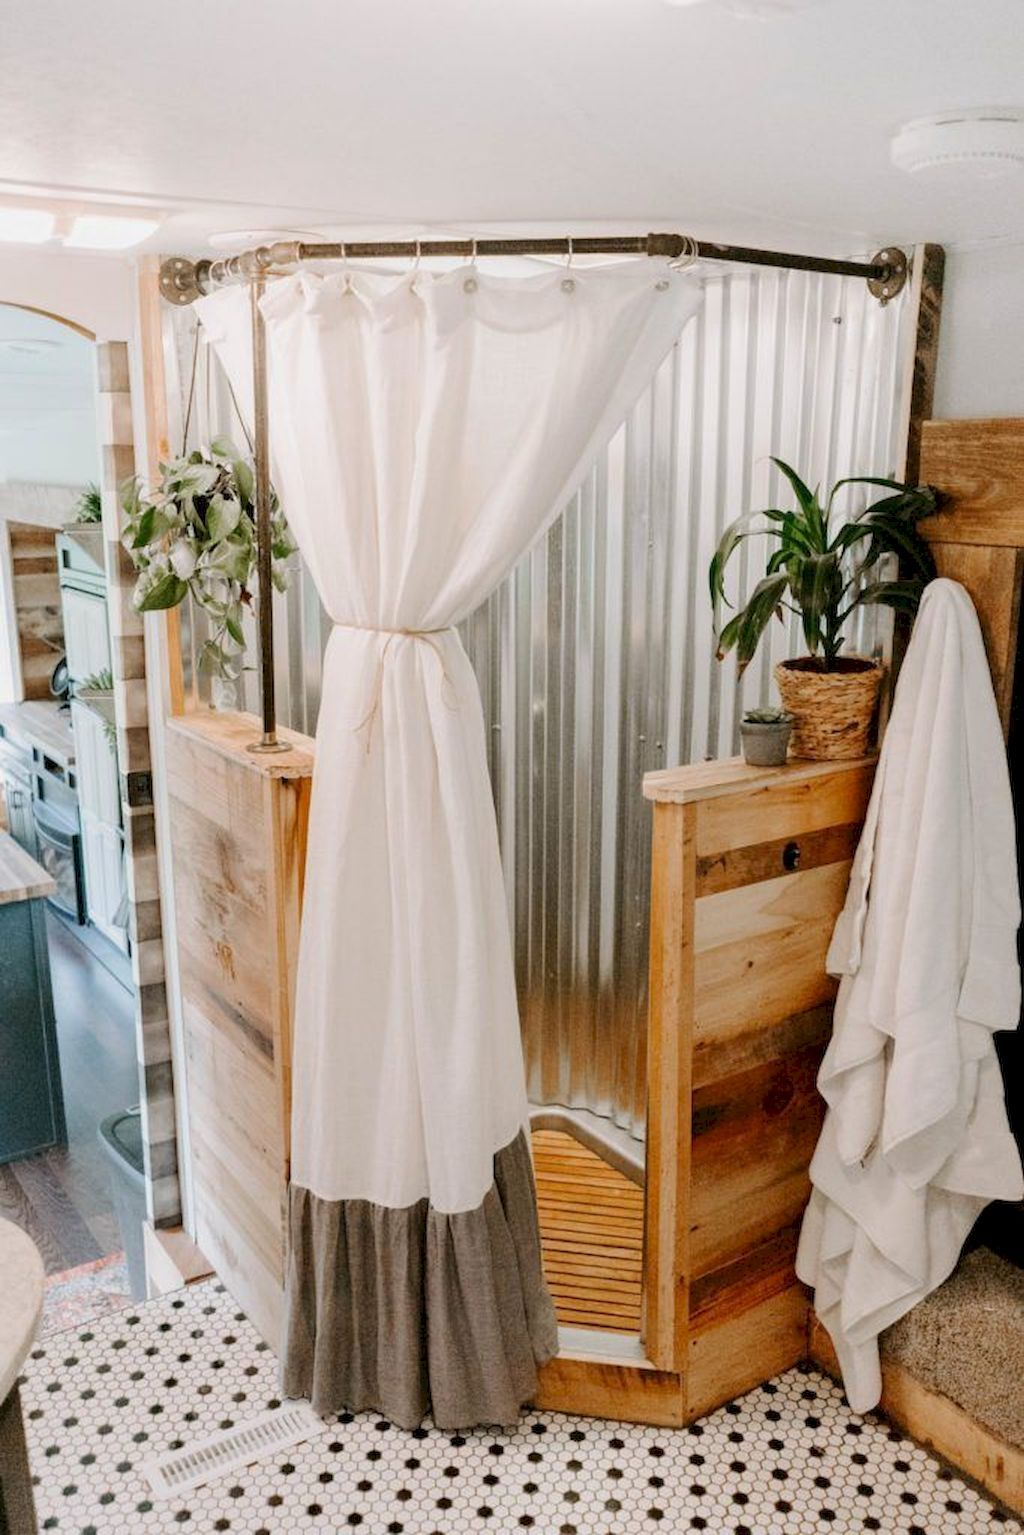 60 Genius Tiny House Bathroom Shower Design Ideas #tinyhousebathroom